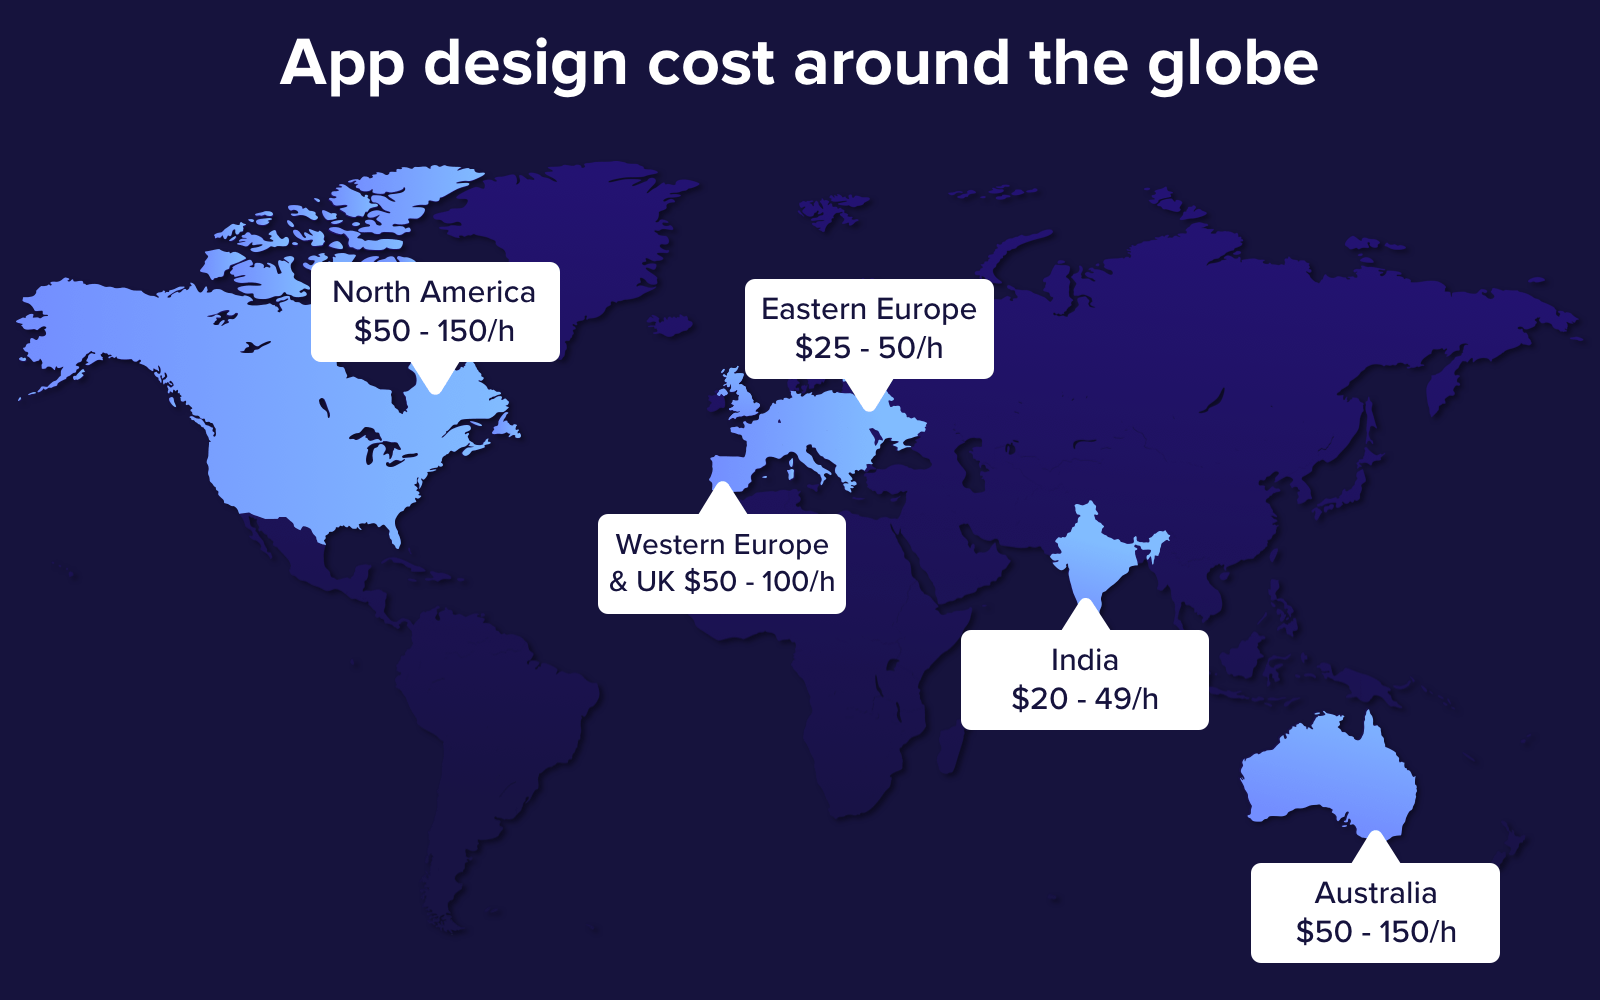 How much does app design cost in different countries